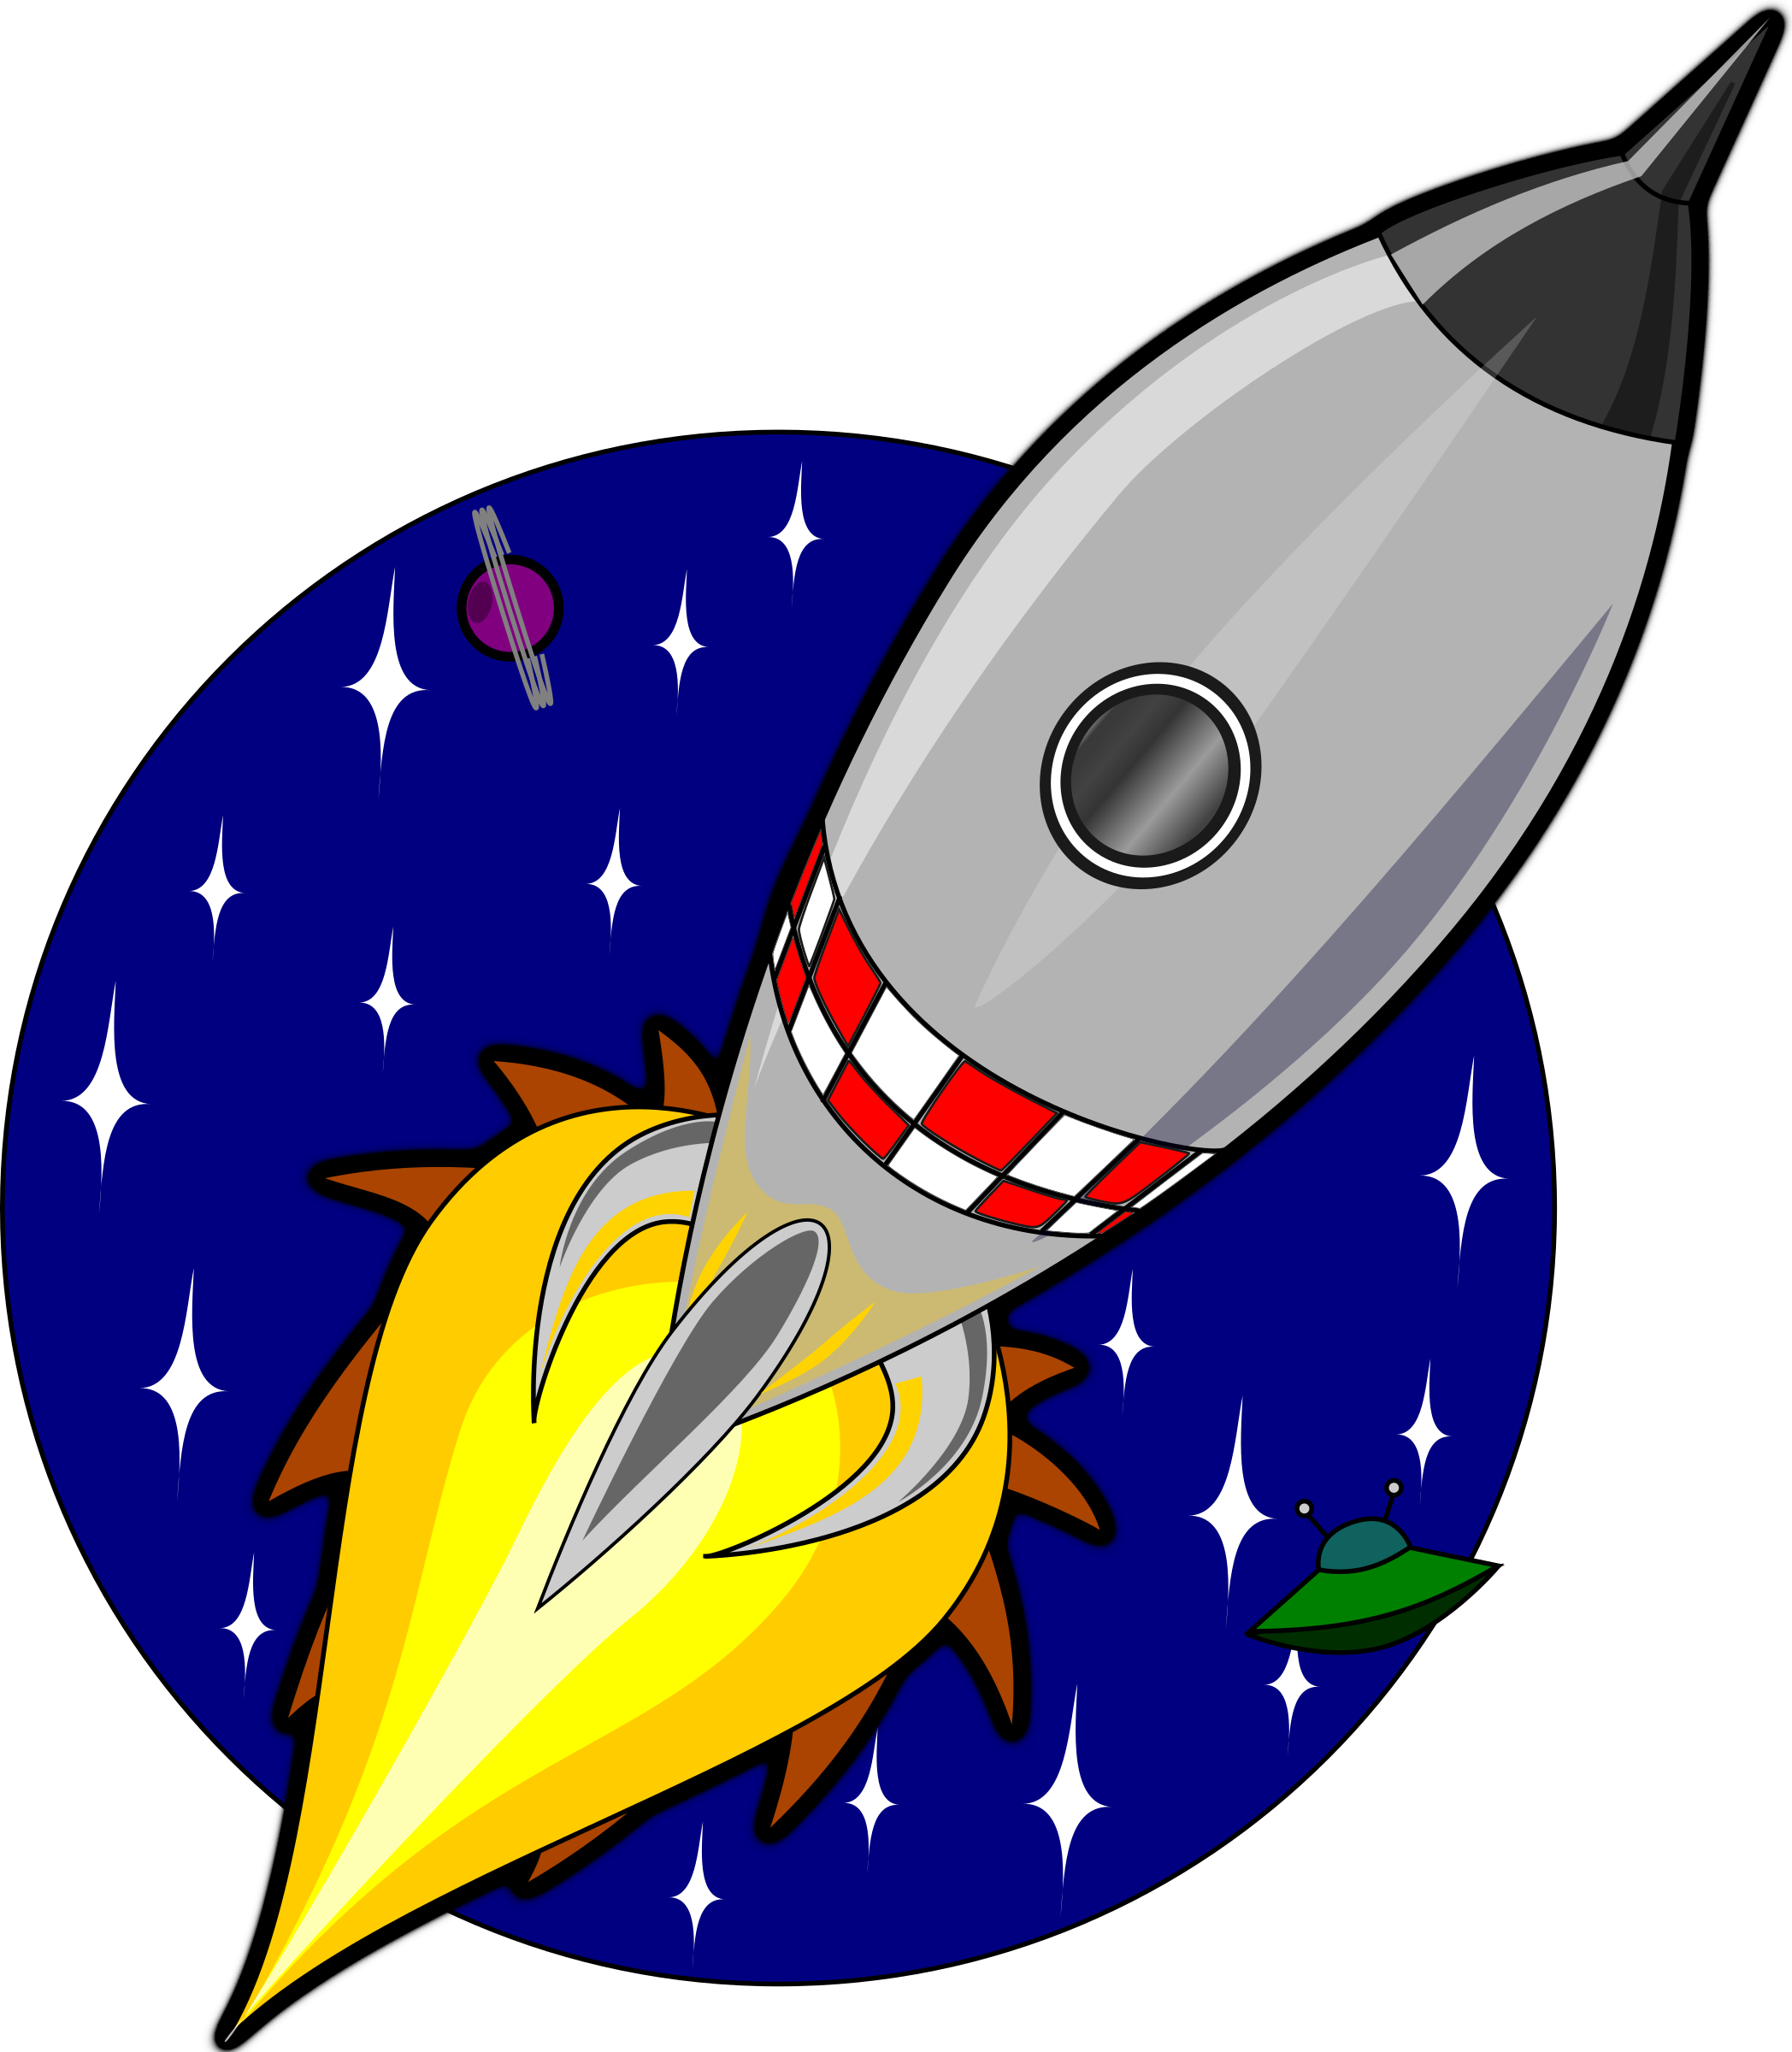 Cartoon rocket by Kliponius